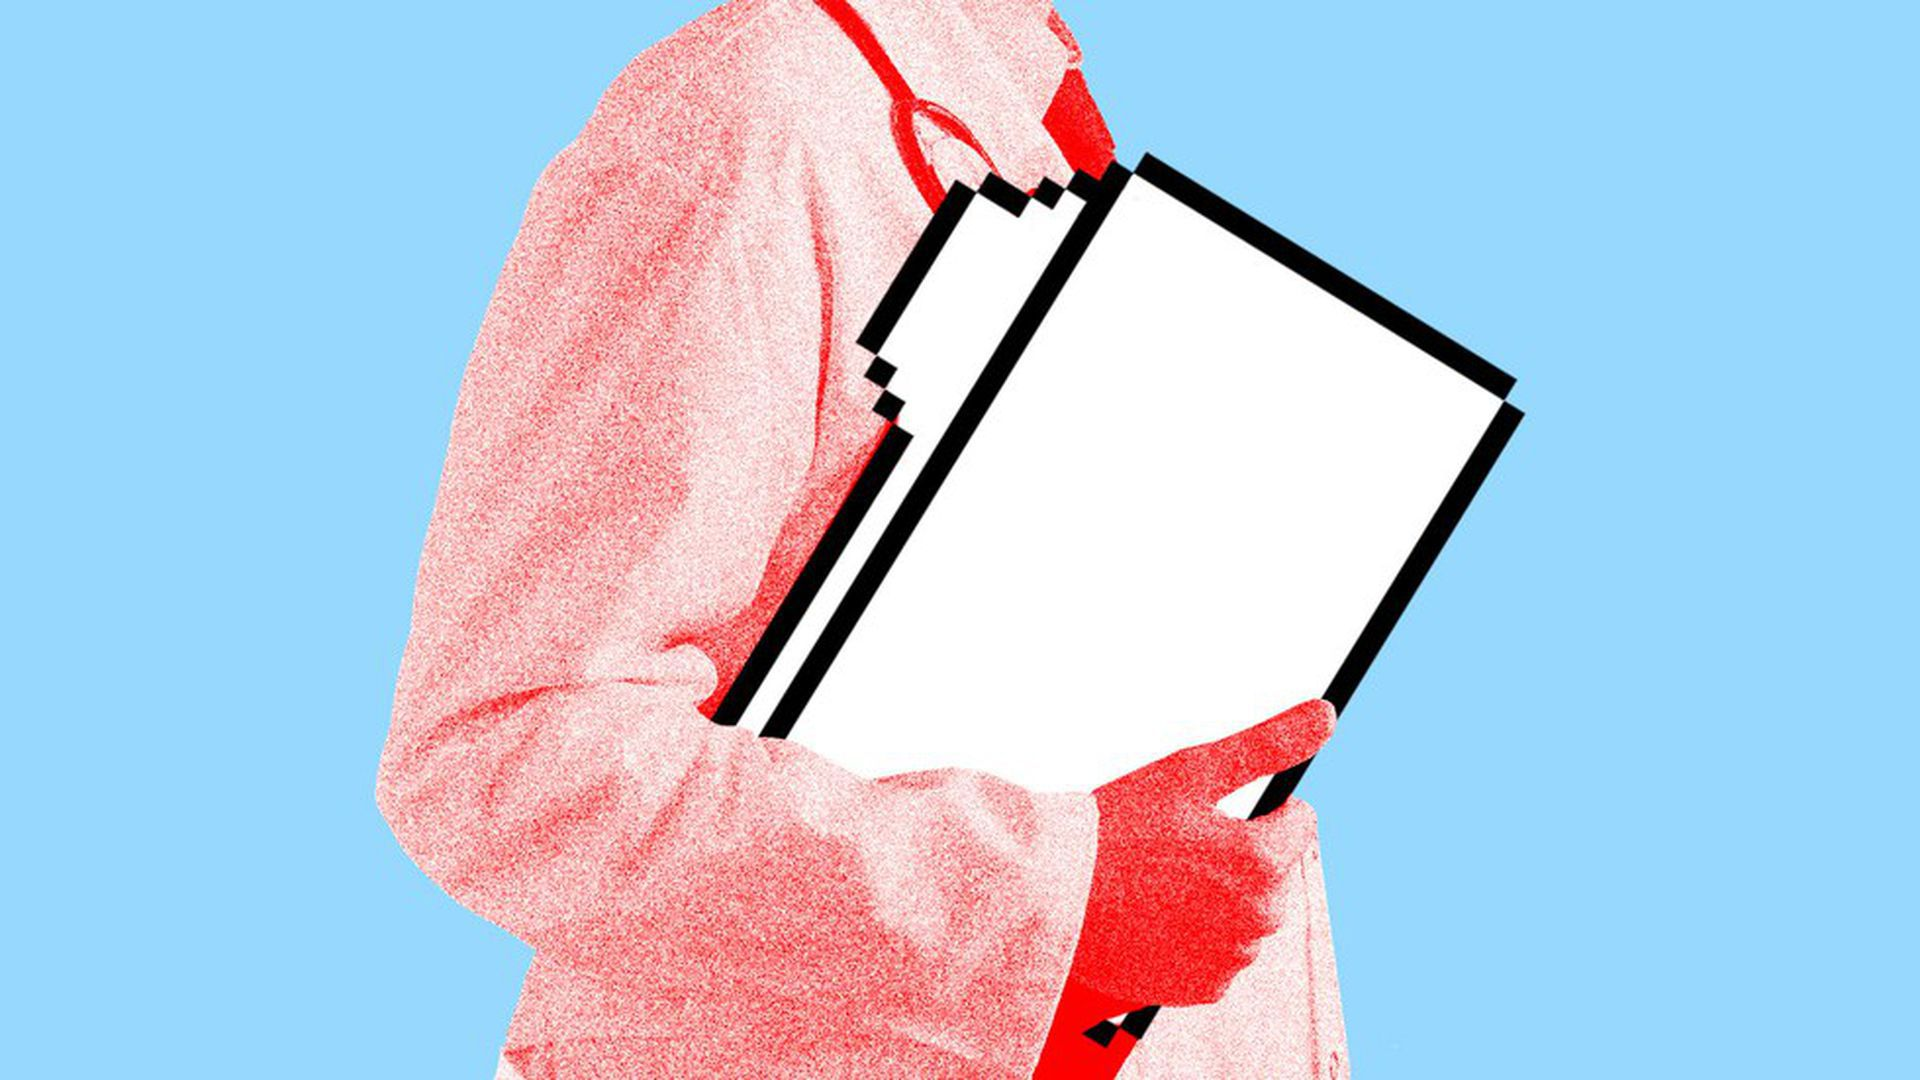 Illustration of a doctor carrying a file folder icon